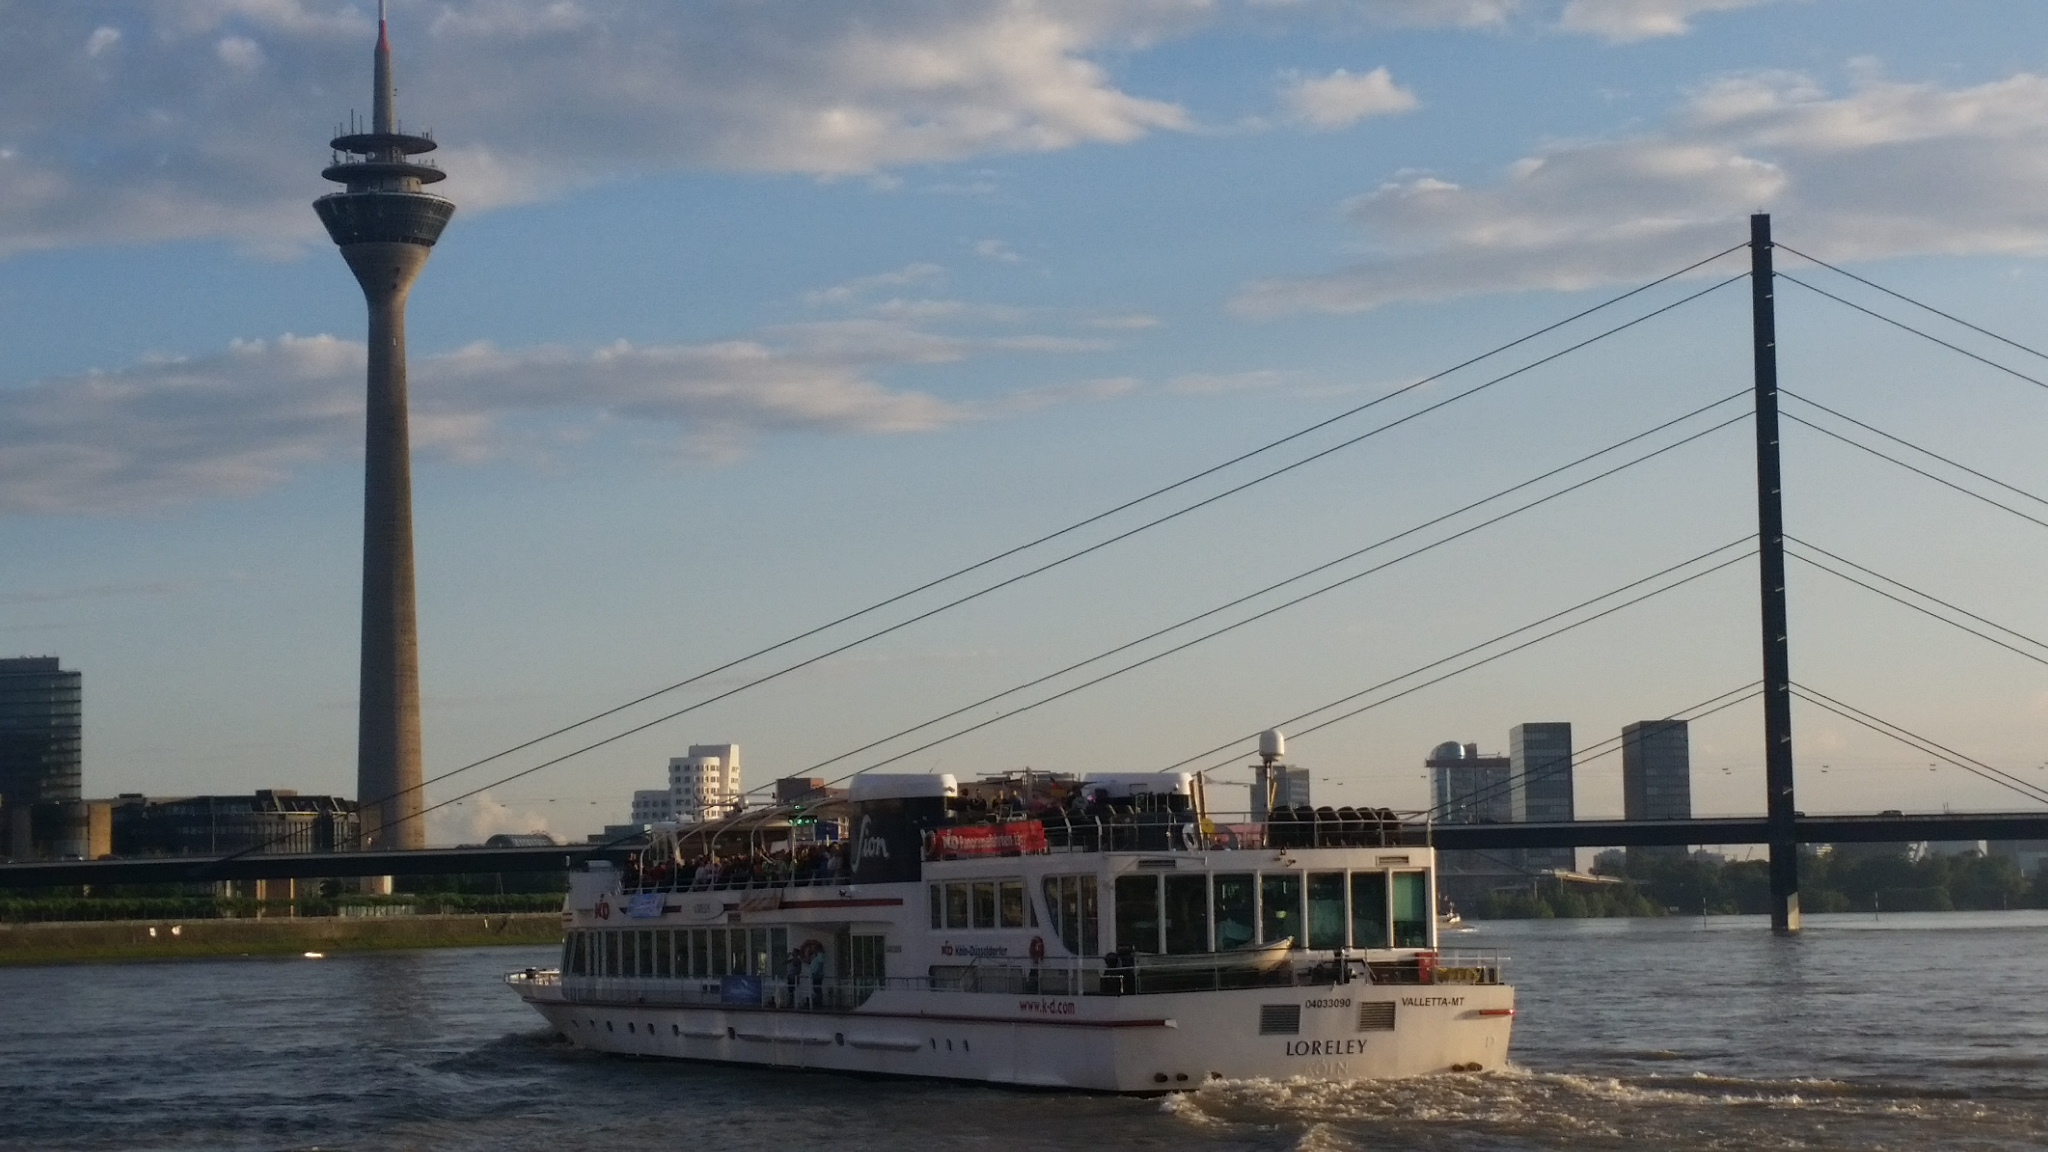 A Rhein River cruise ship in frame between the Rhein Tower and the towers of the Oberkassel Bridge.